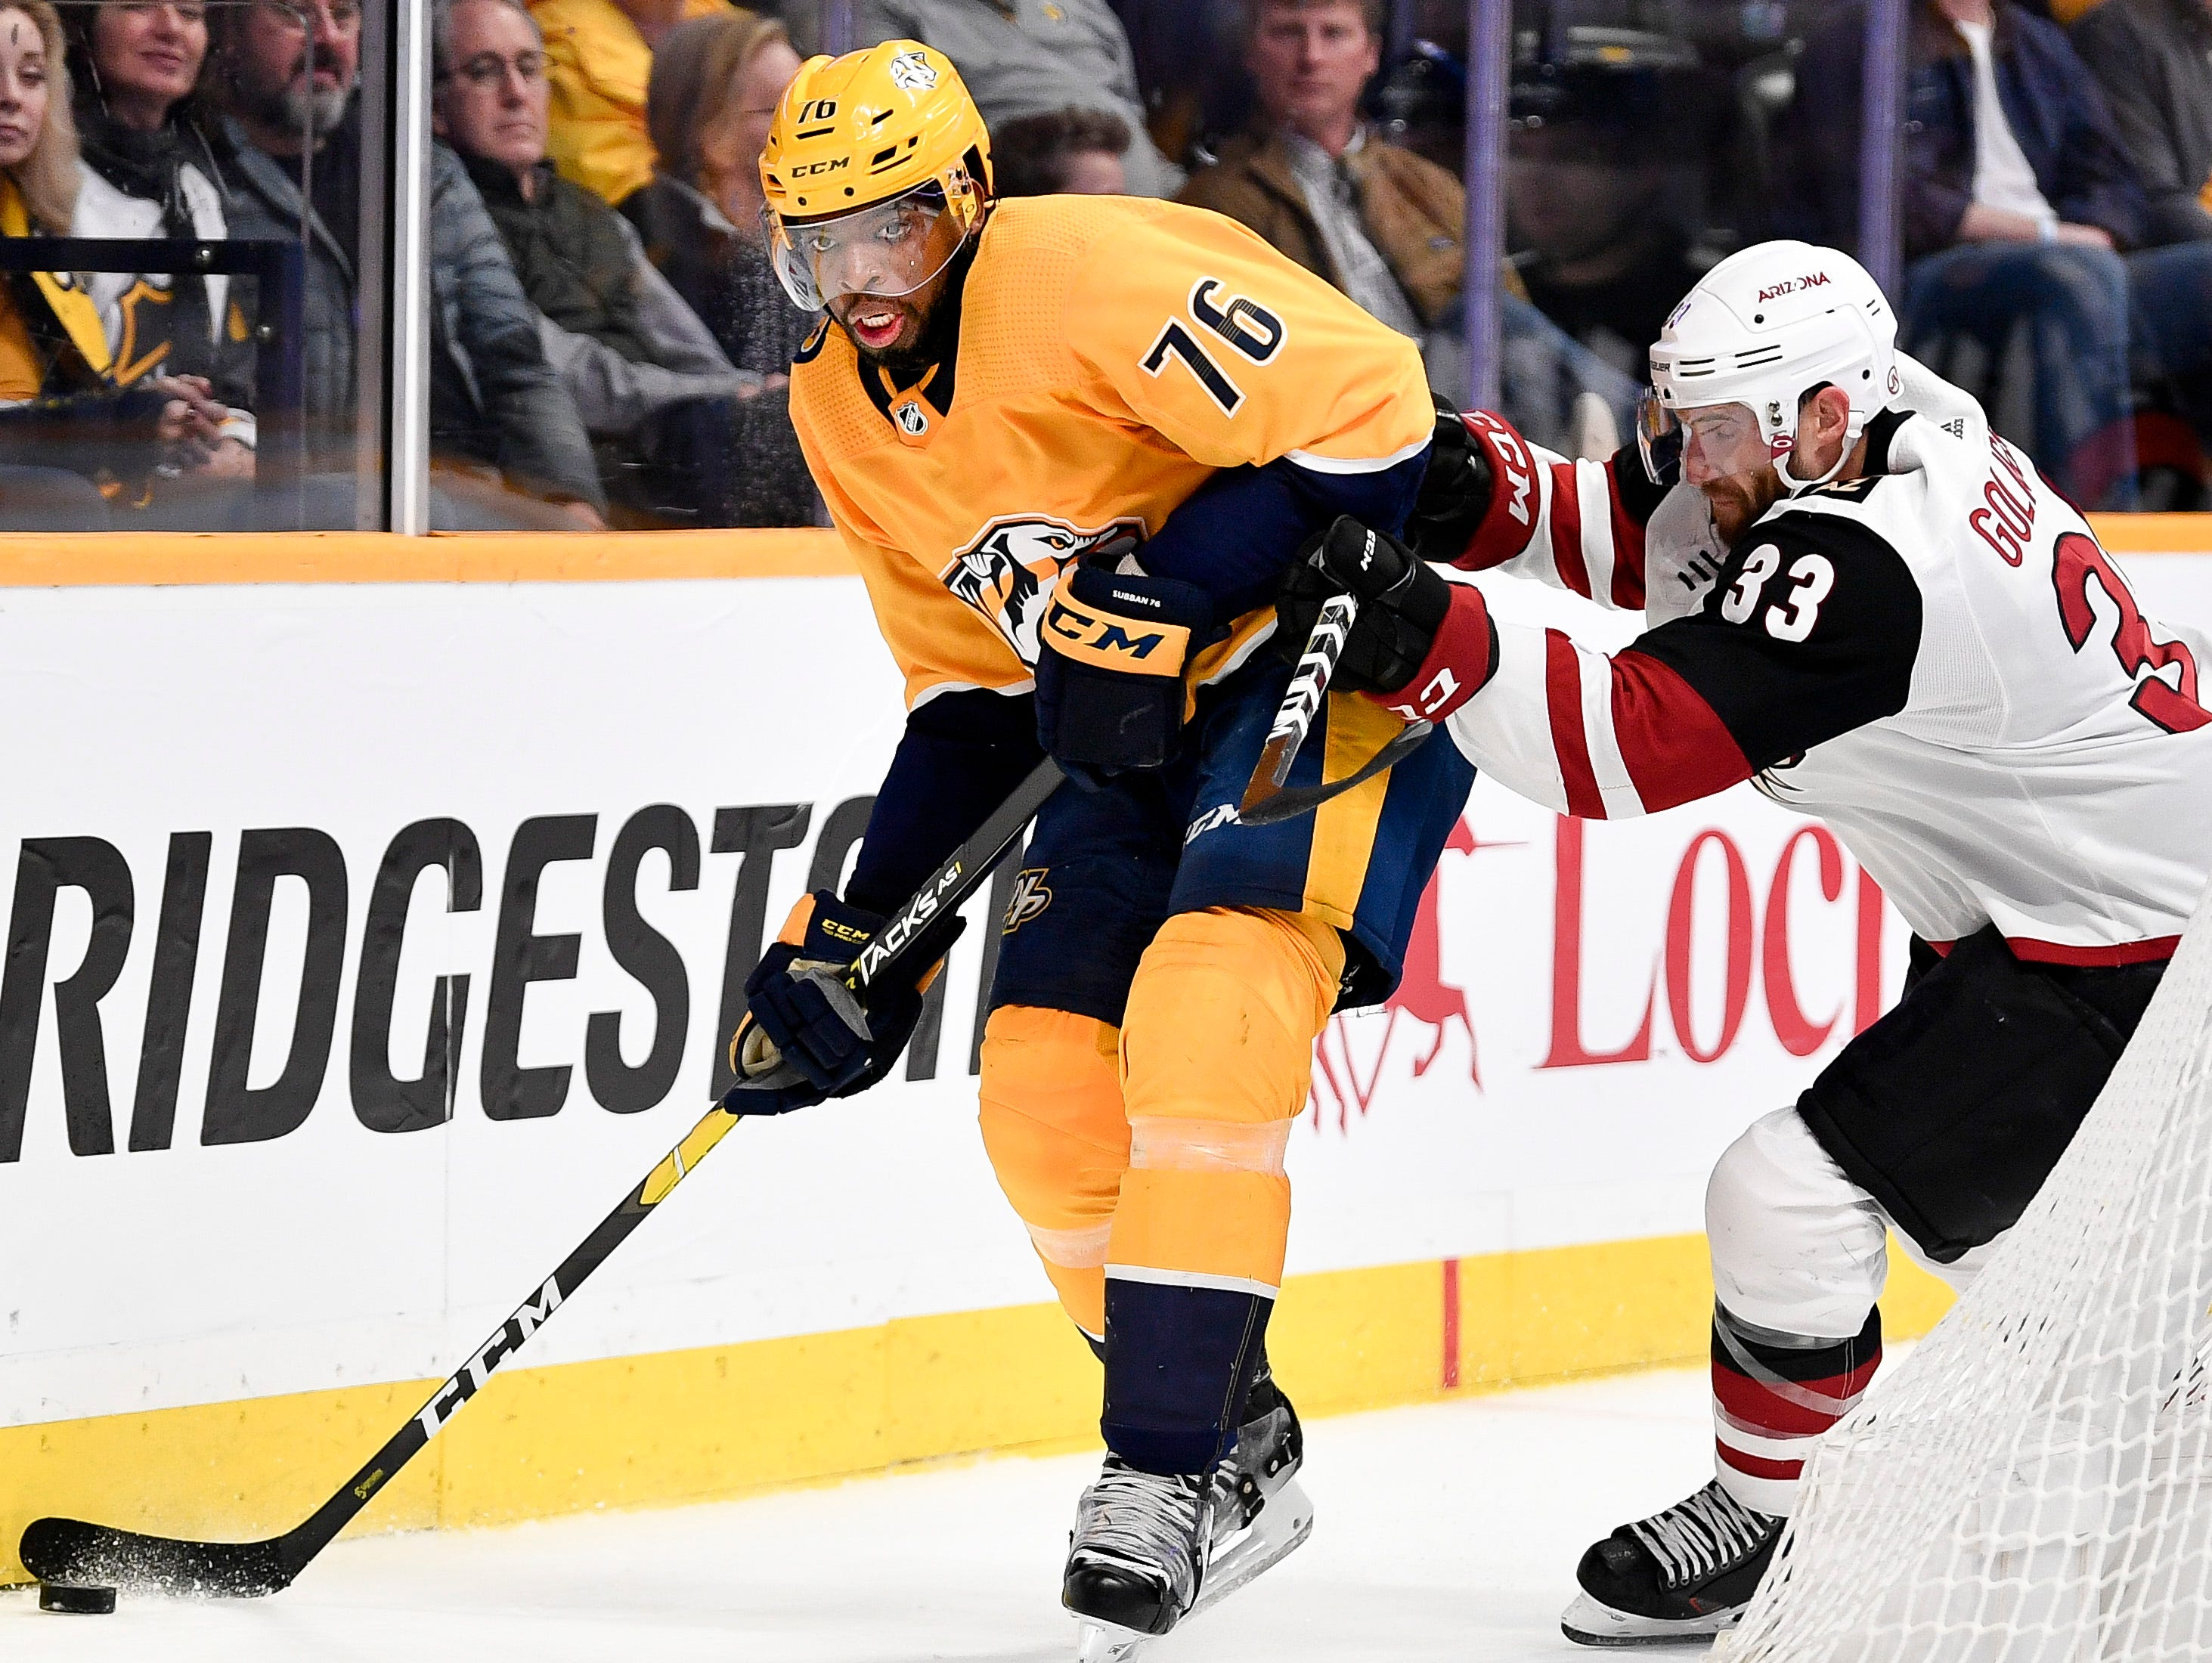 Nashville Predators defenseman P.K. Subban (76) battles for the puck with Arizona Coyotes defenseman Alex Goligoski (33) during the first period at Bridgestone Arena in Nashville, Tenn., Tuesday, Feb. 5, 2019.